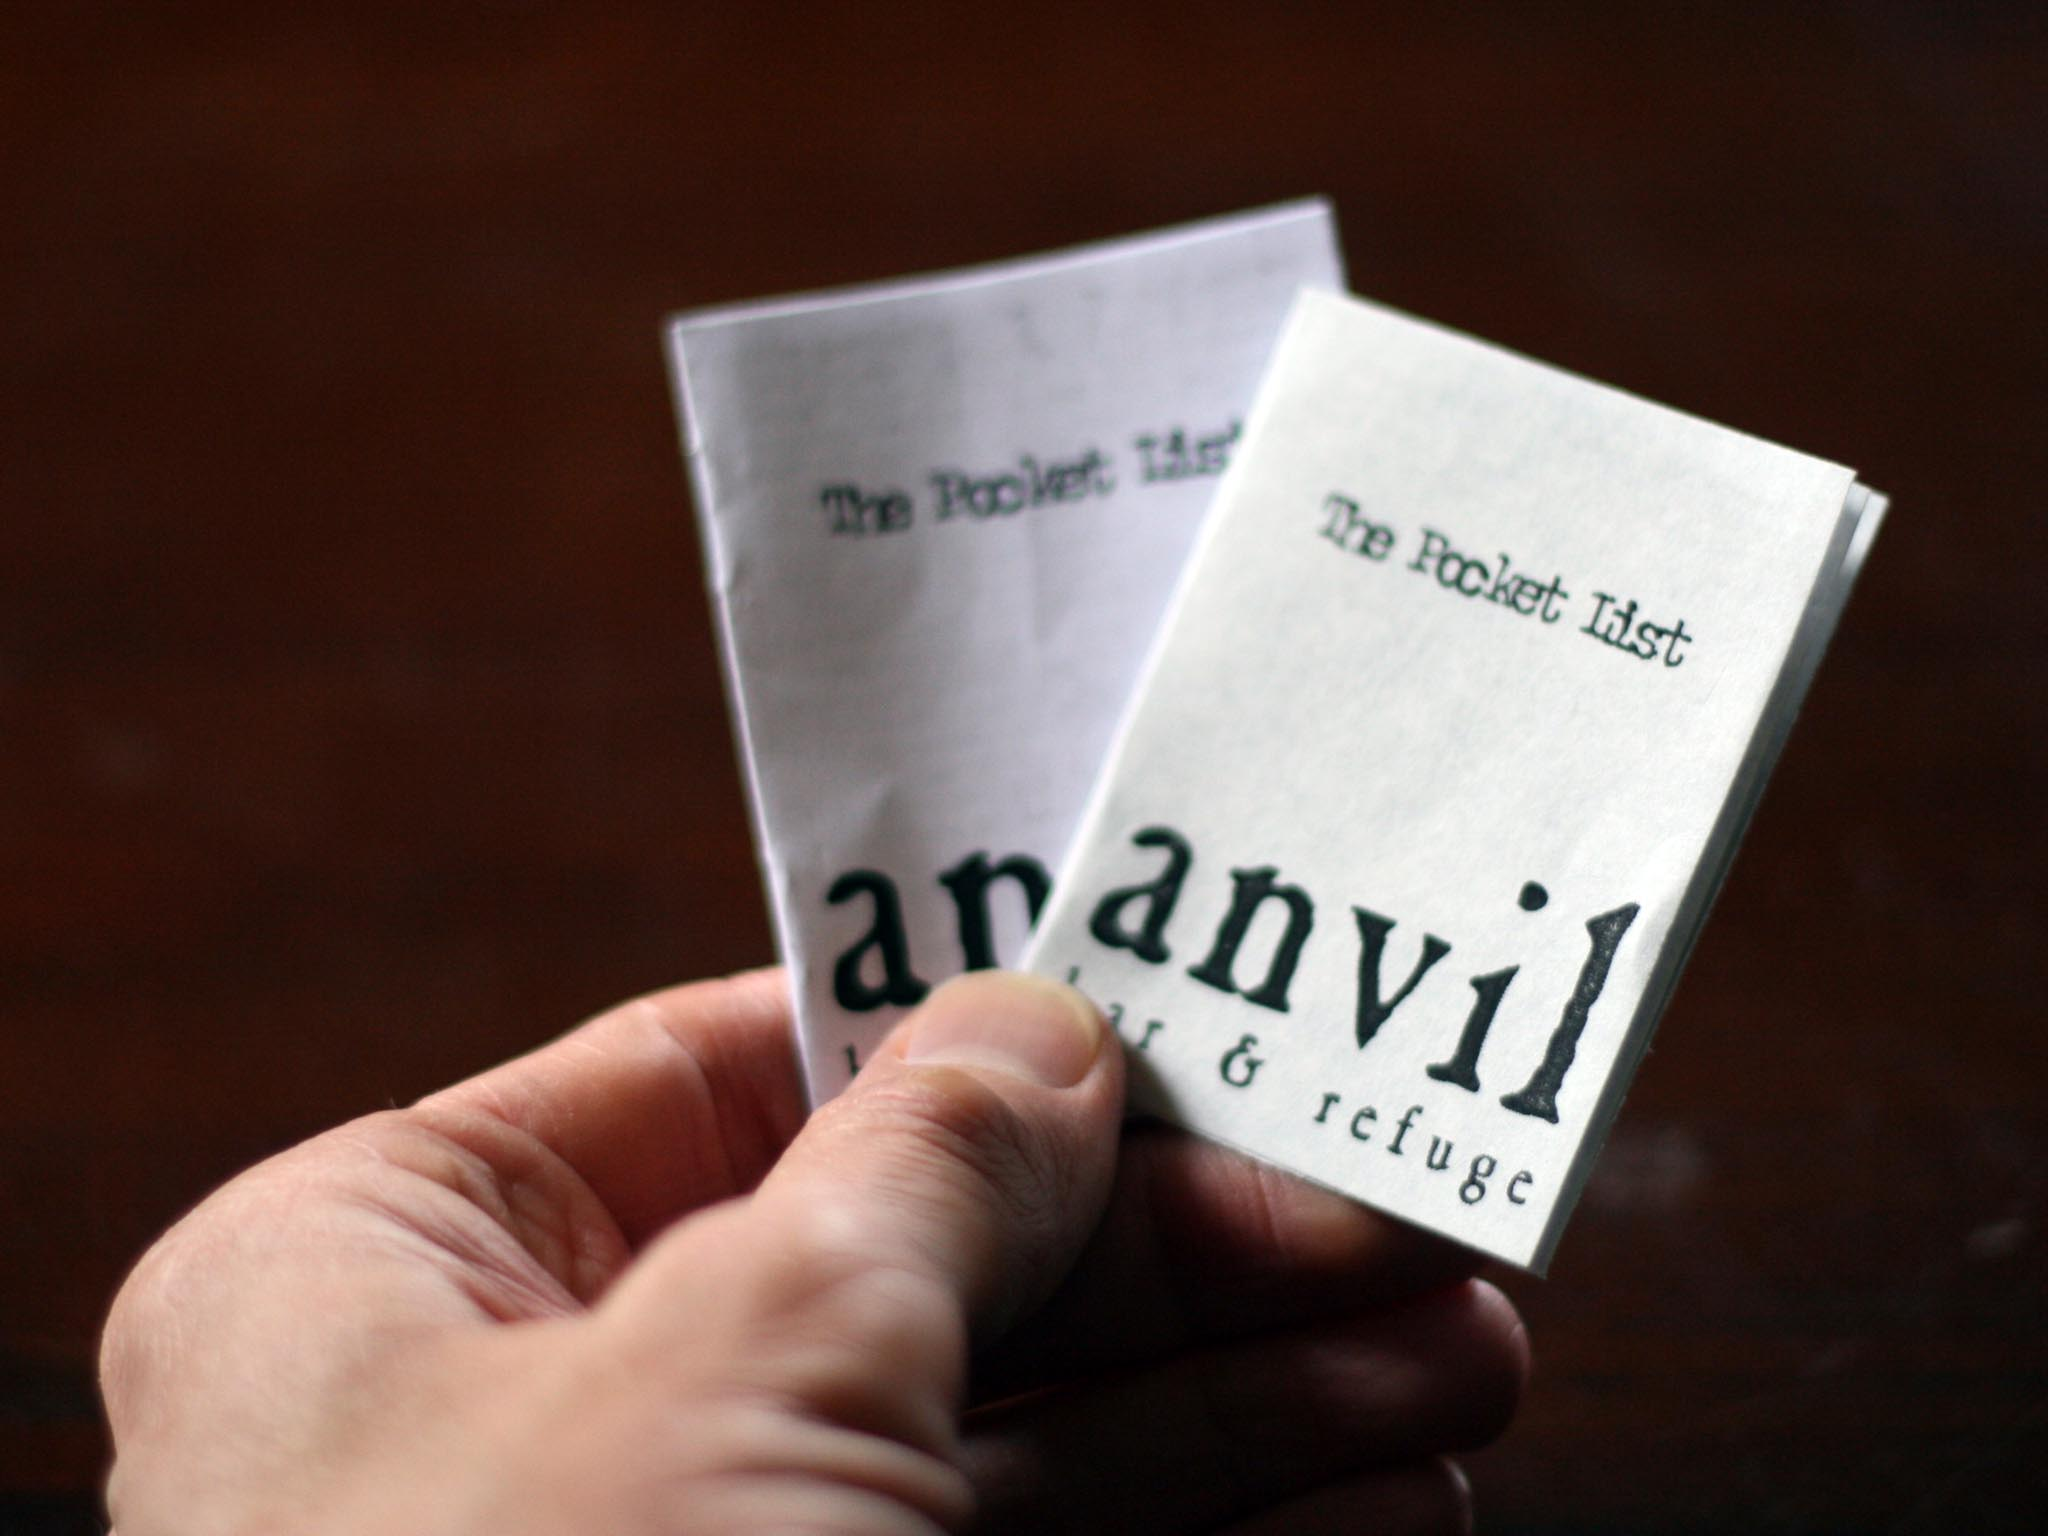 Anvil pocket list